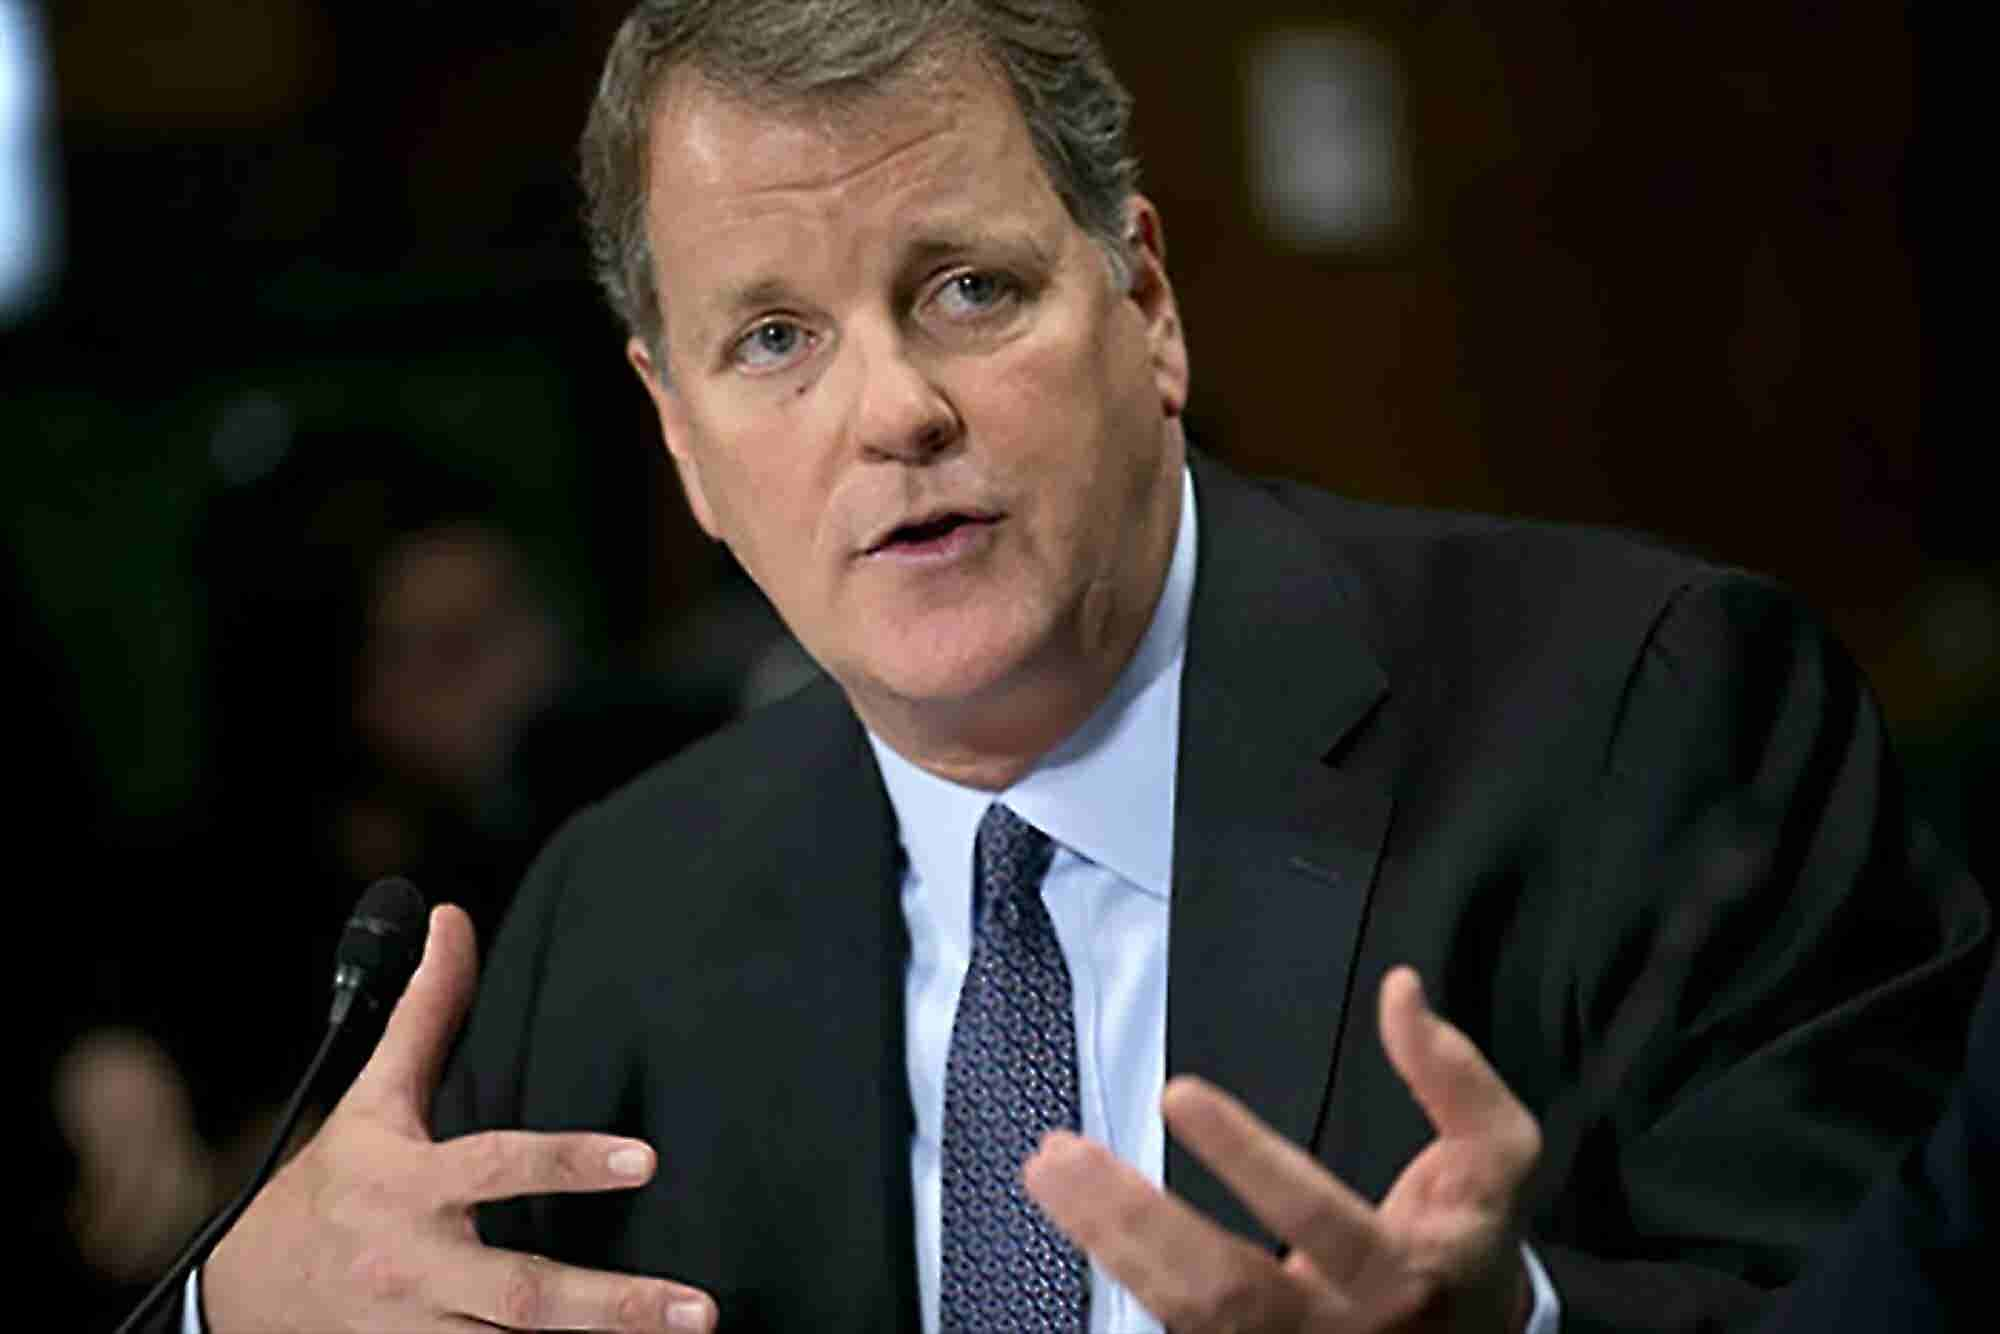 American Airlines CEO: Fares Won't Rise if Demand Holds Steady